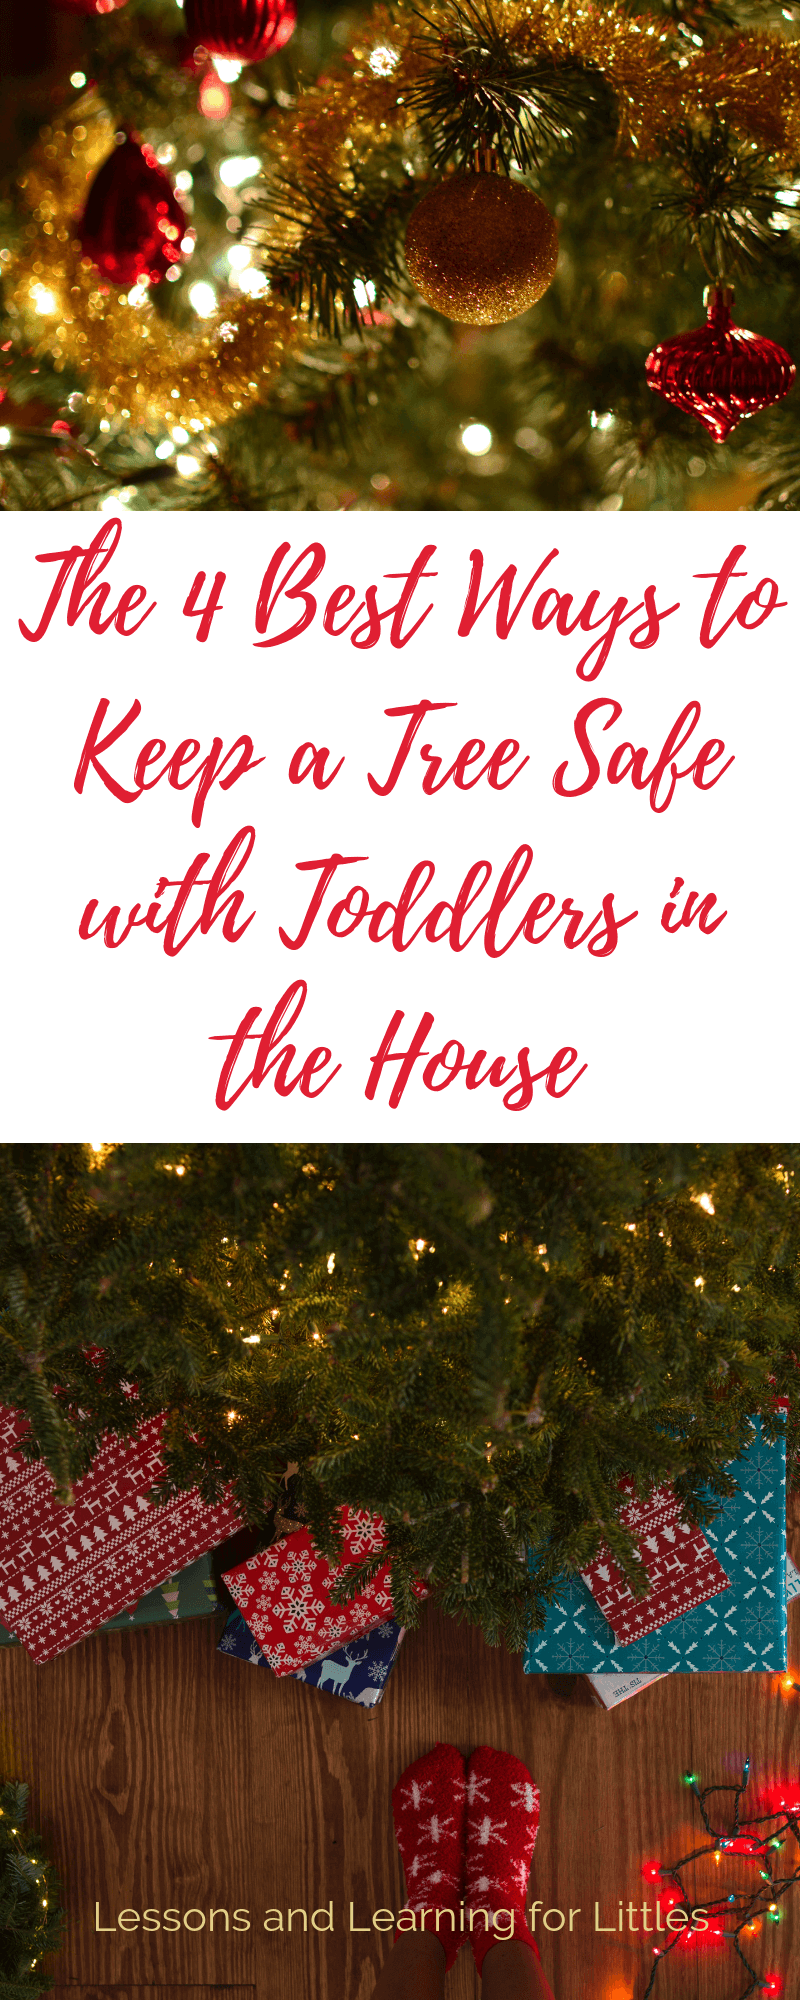 How to decorate a Christmas tree with #toddlers and #pets in the house and keep it safe all season long. #ChristmasTree #Christmas2018 #Toddlers #Motherhood